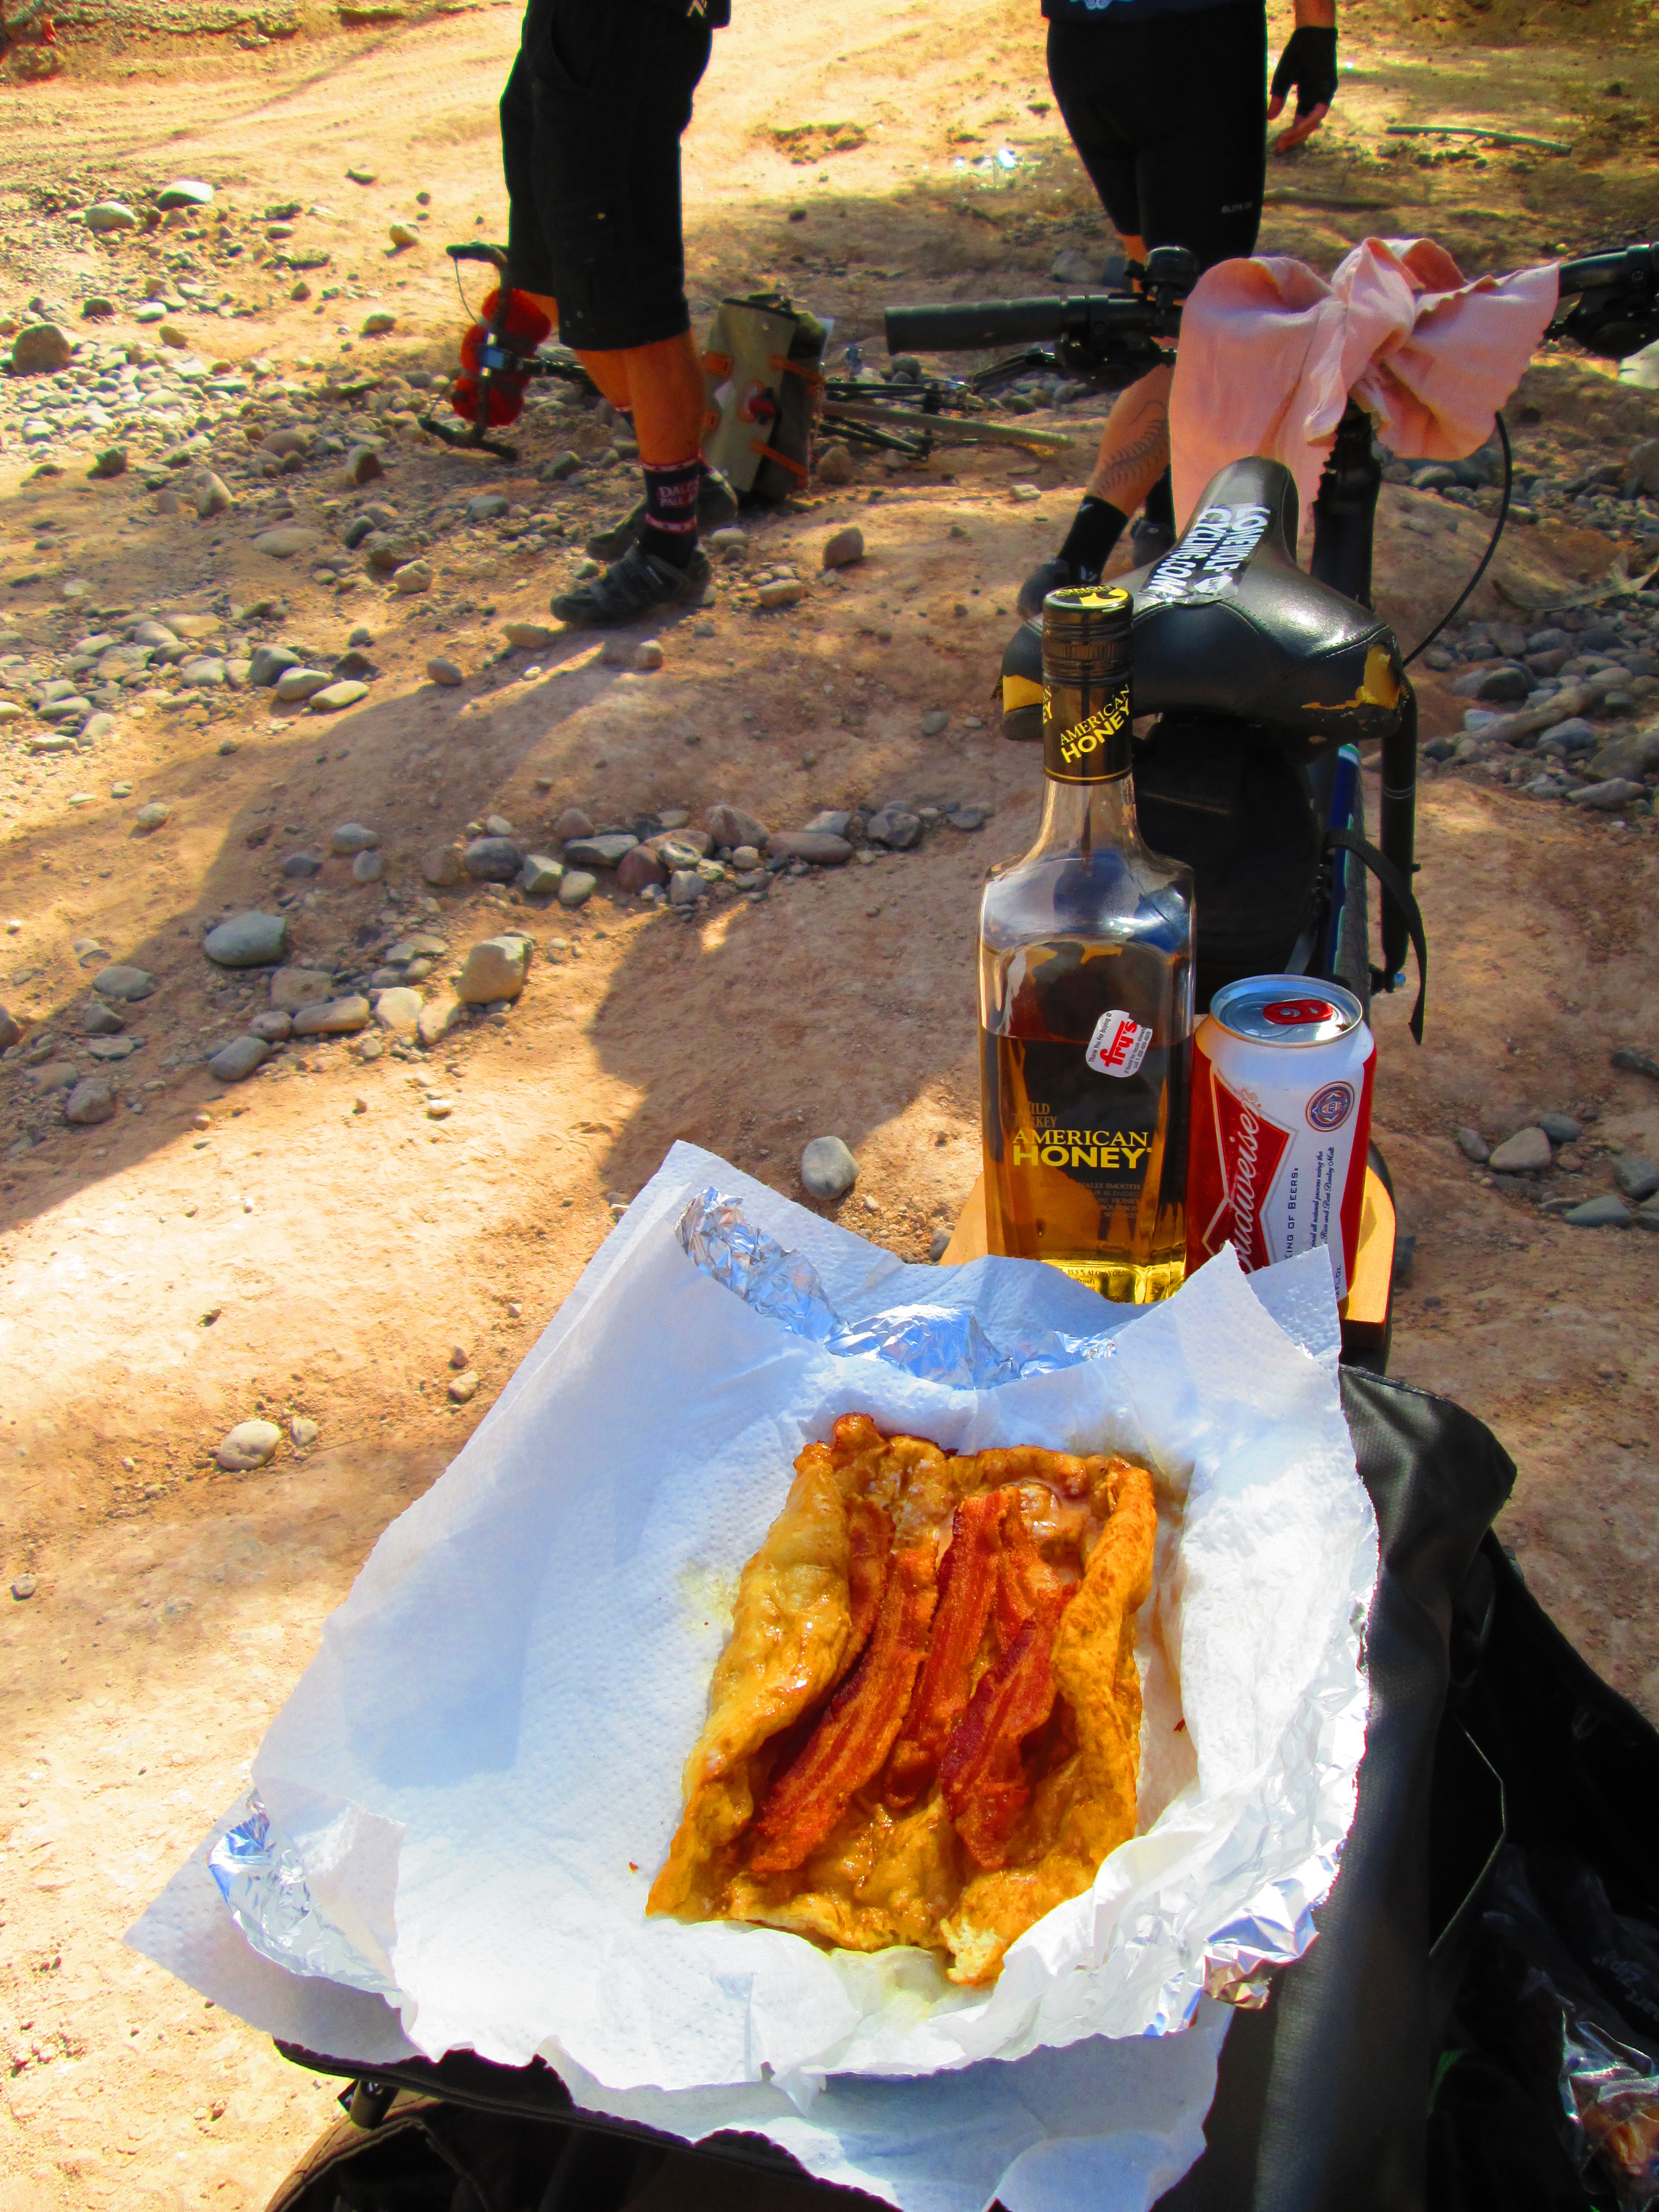 frybread, bacon, Bud, and honey whiskey.